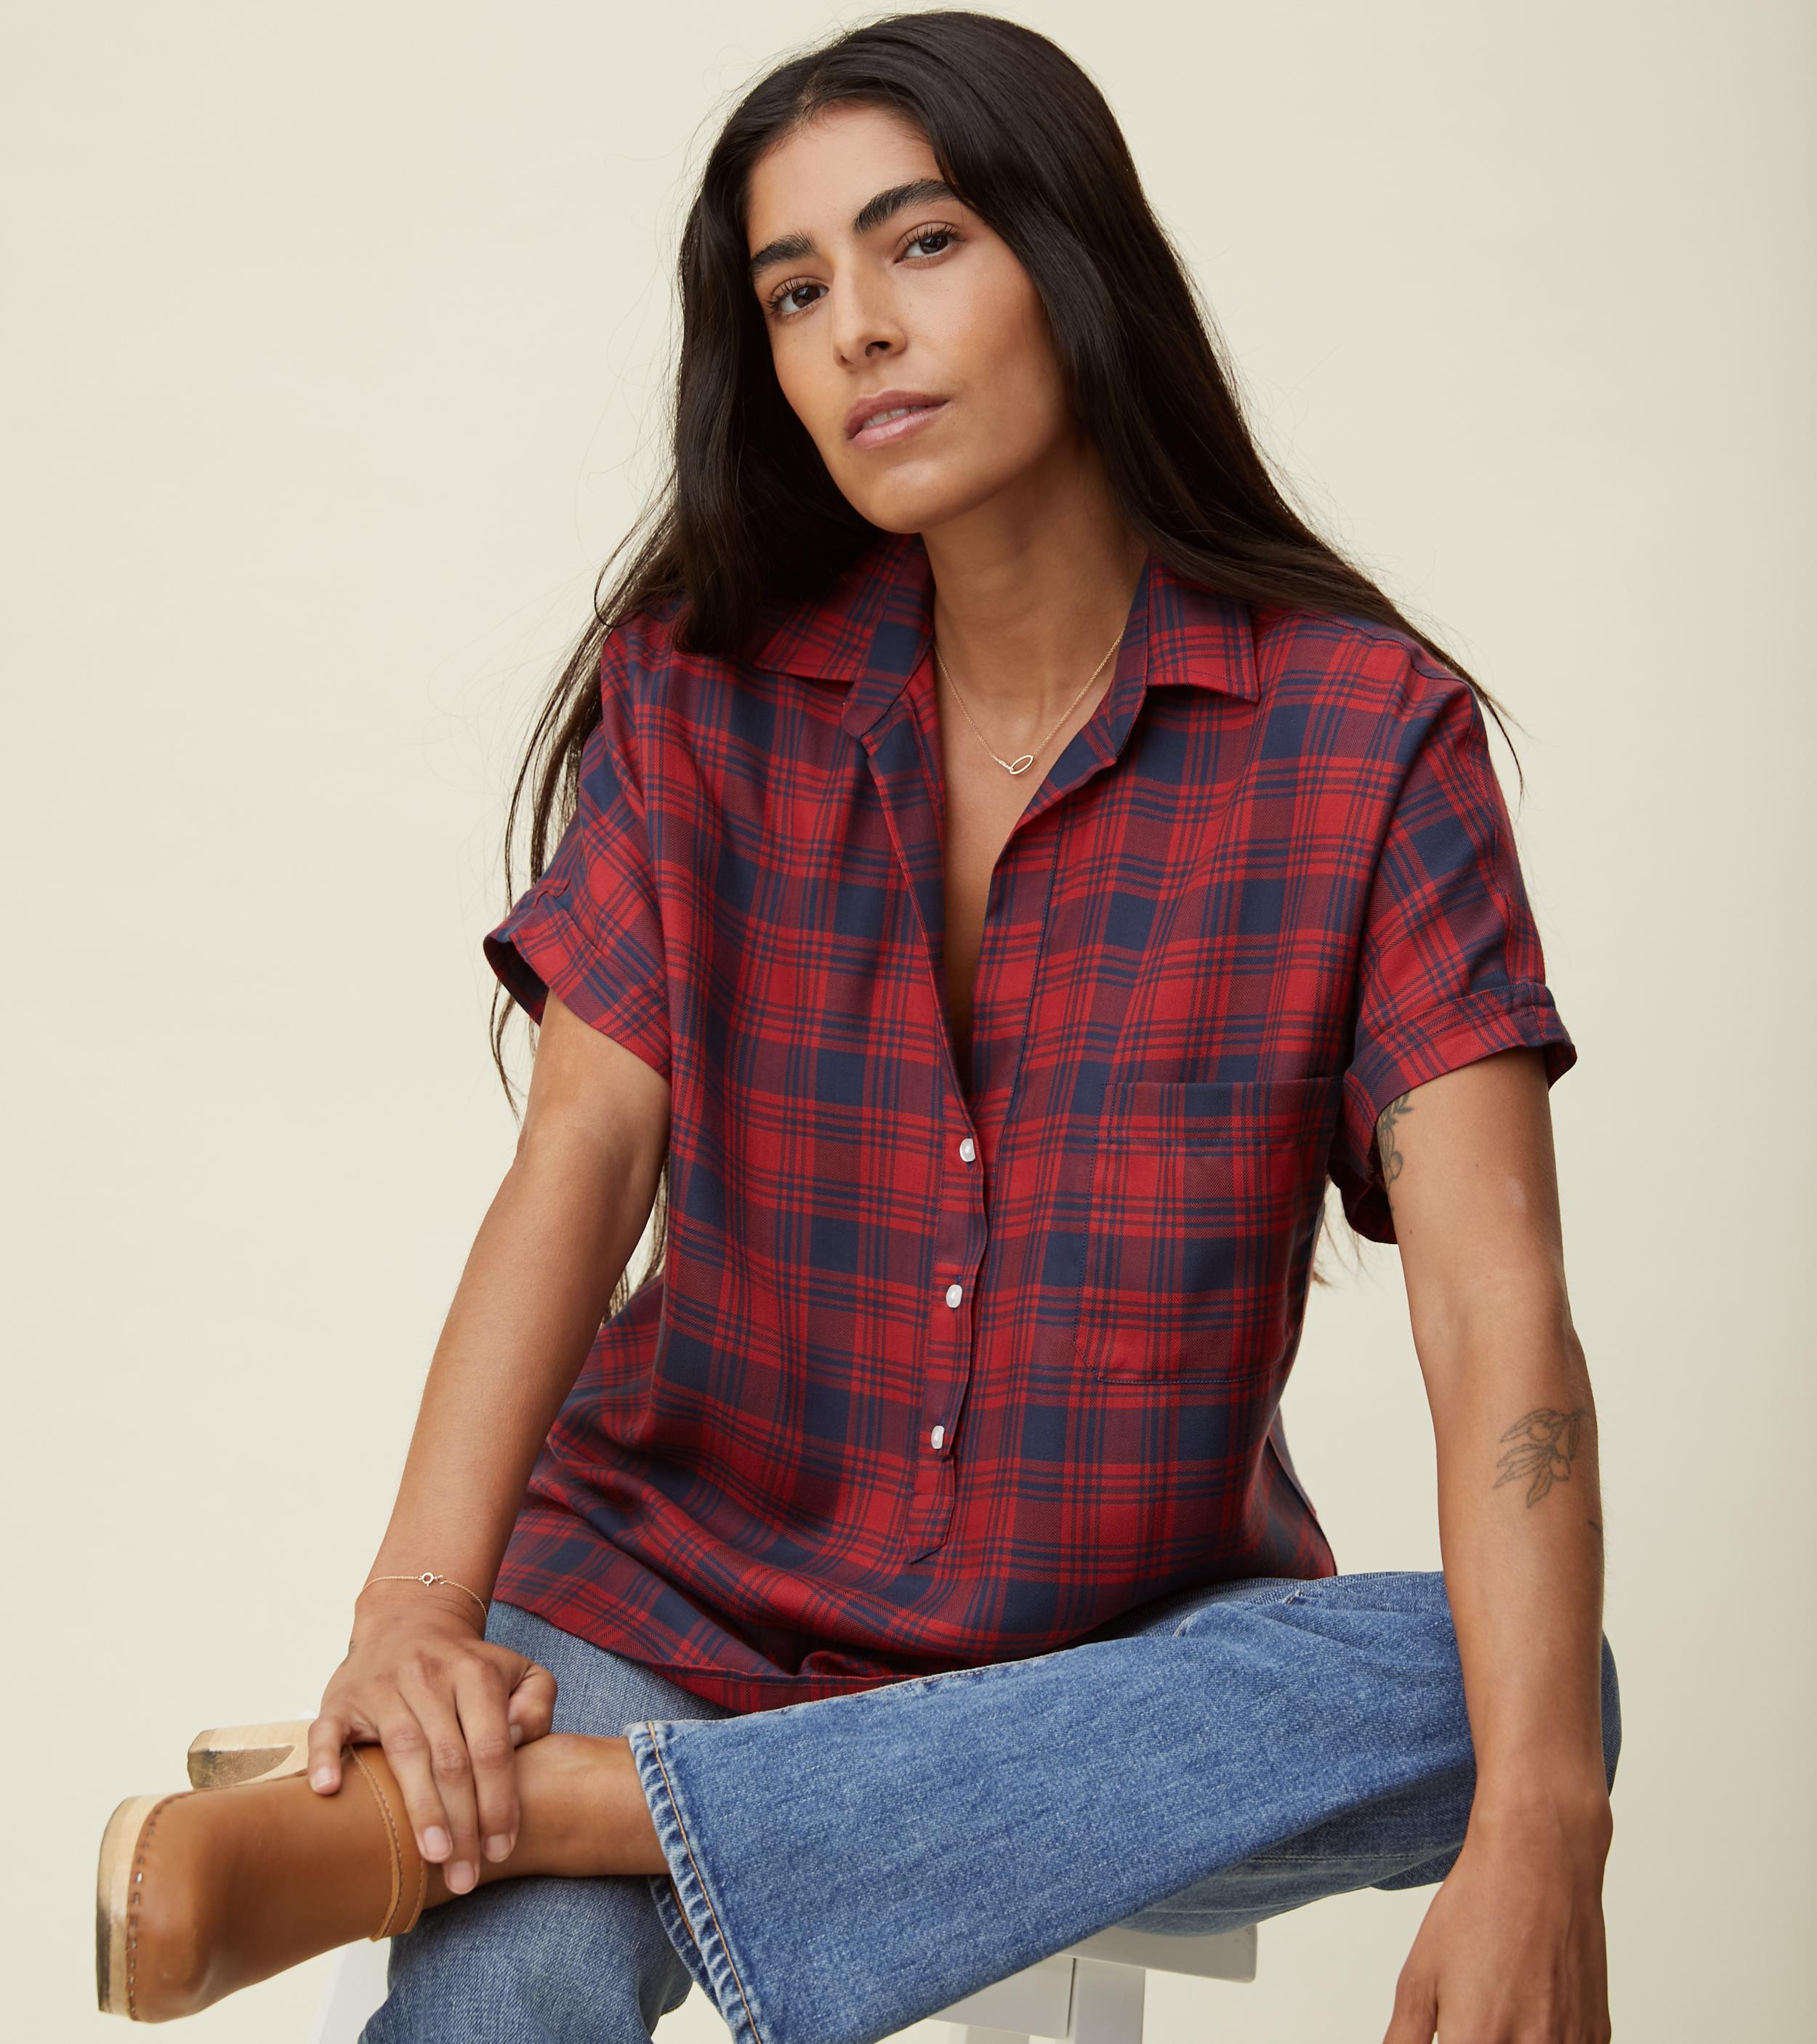 The Artist Short Sleeve Shirt Red and Navy Plaid, Liquid Flannel